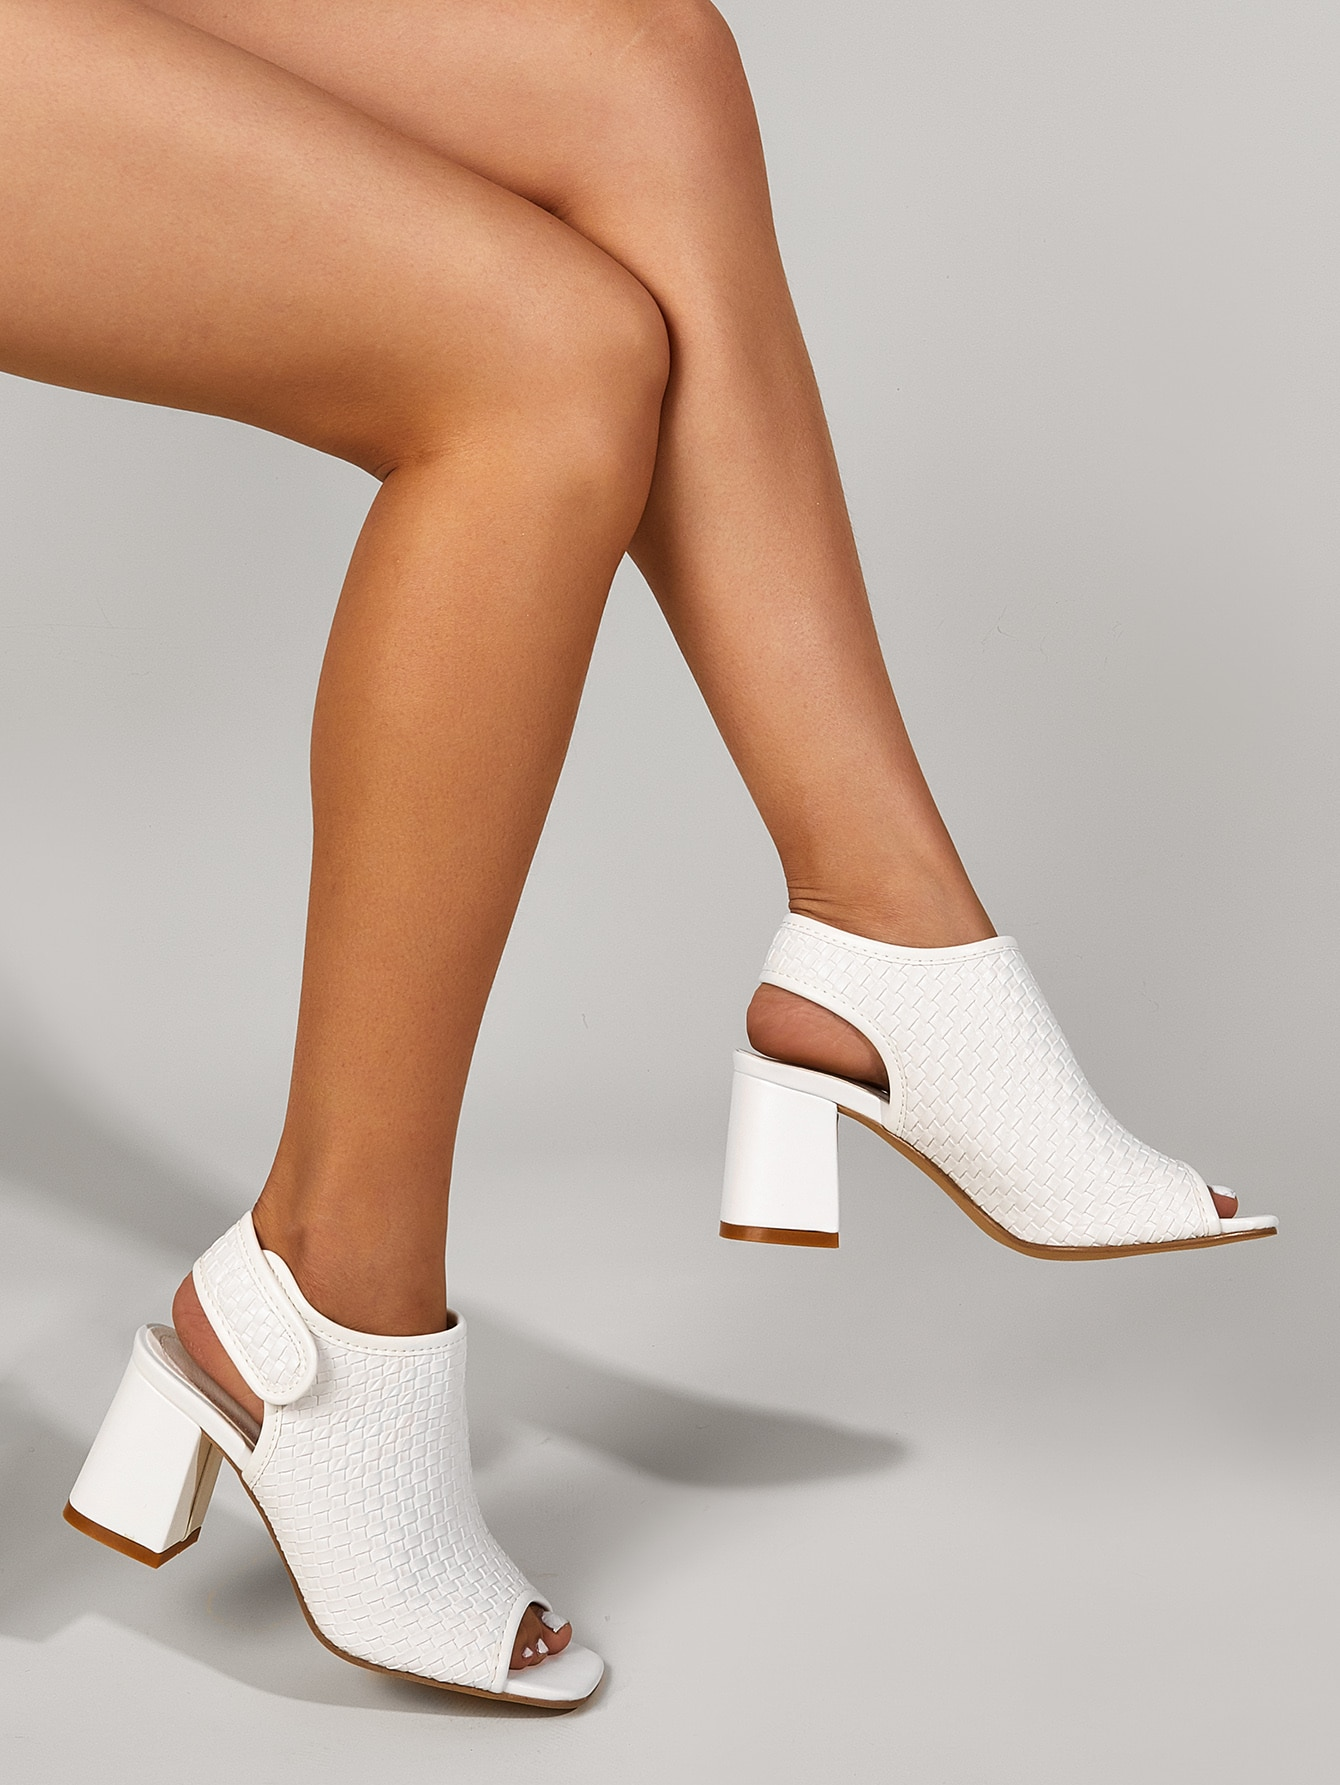 Woven Pattern Chunky Heeled Sandals Boots